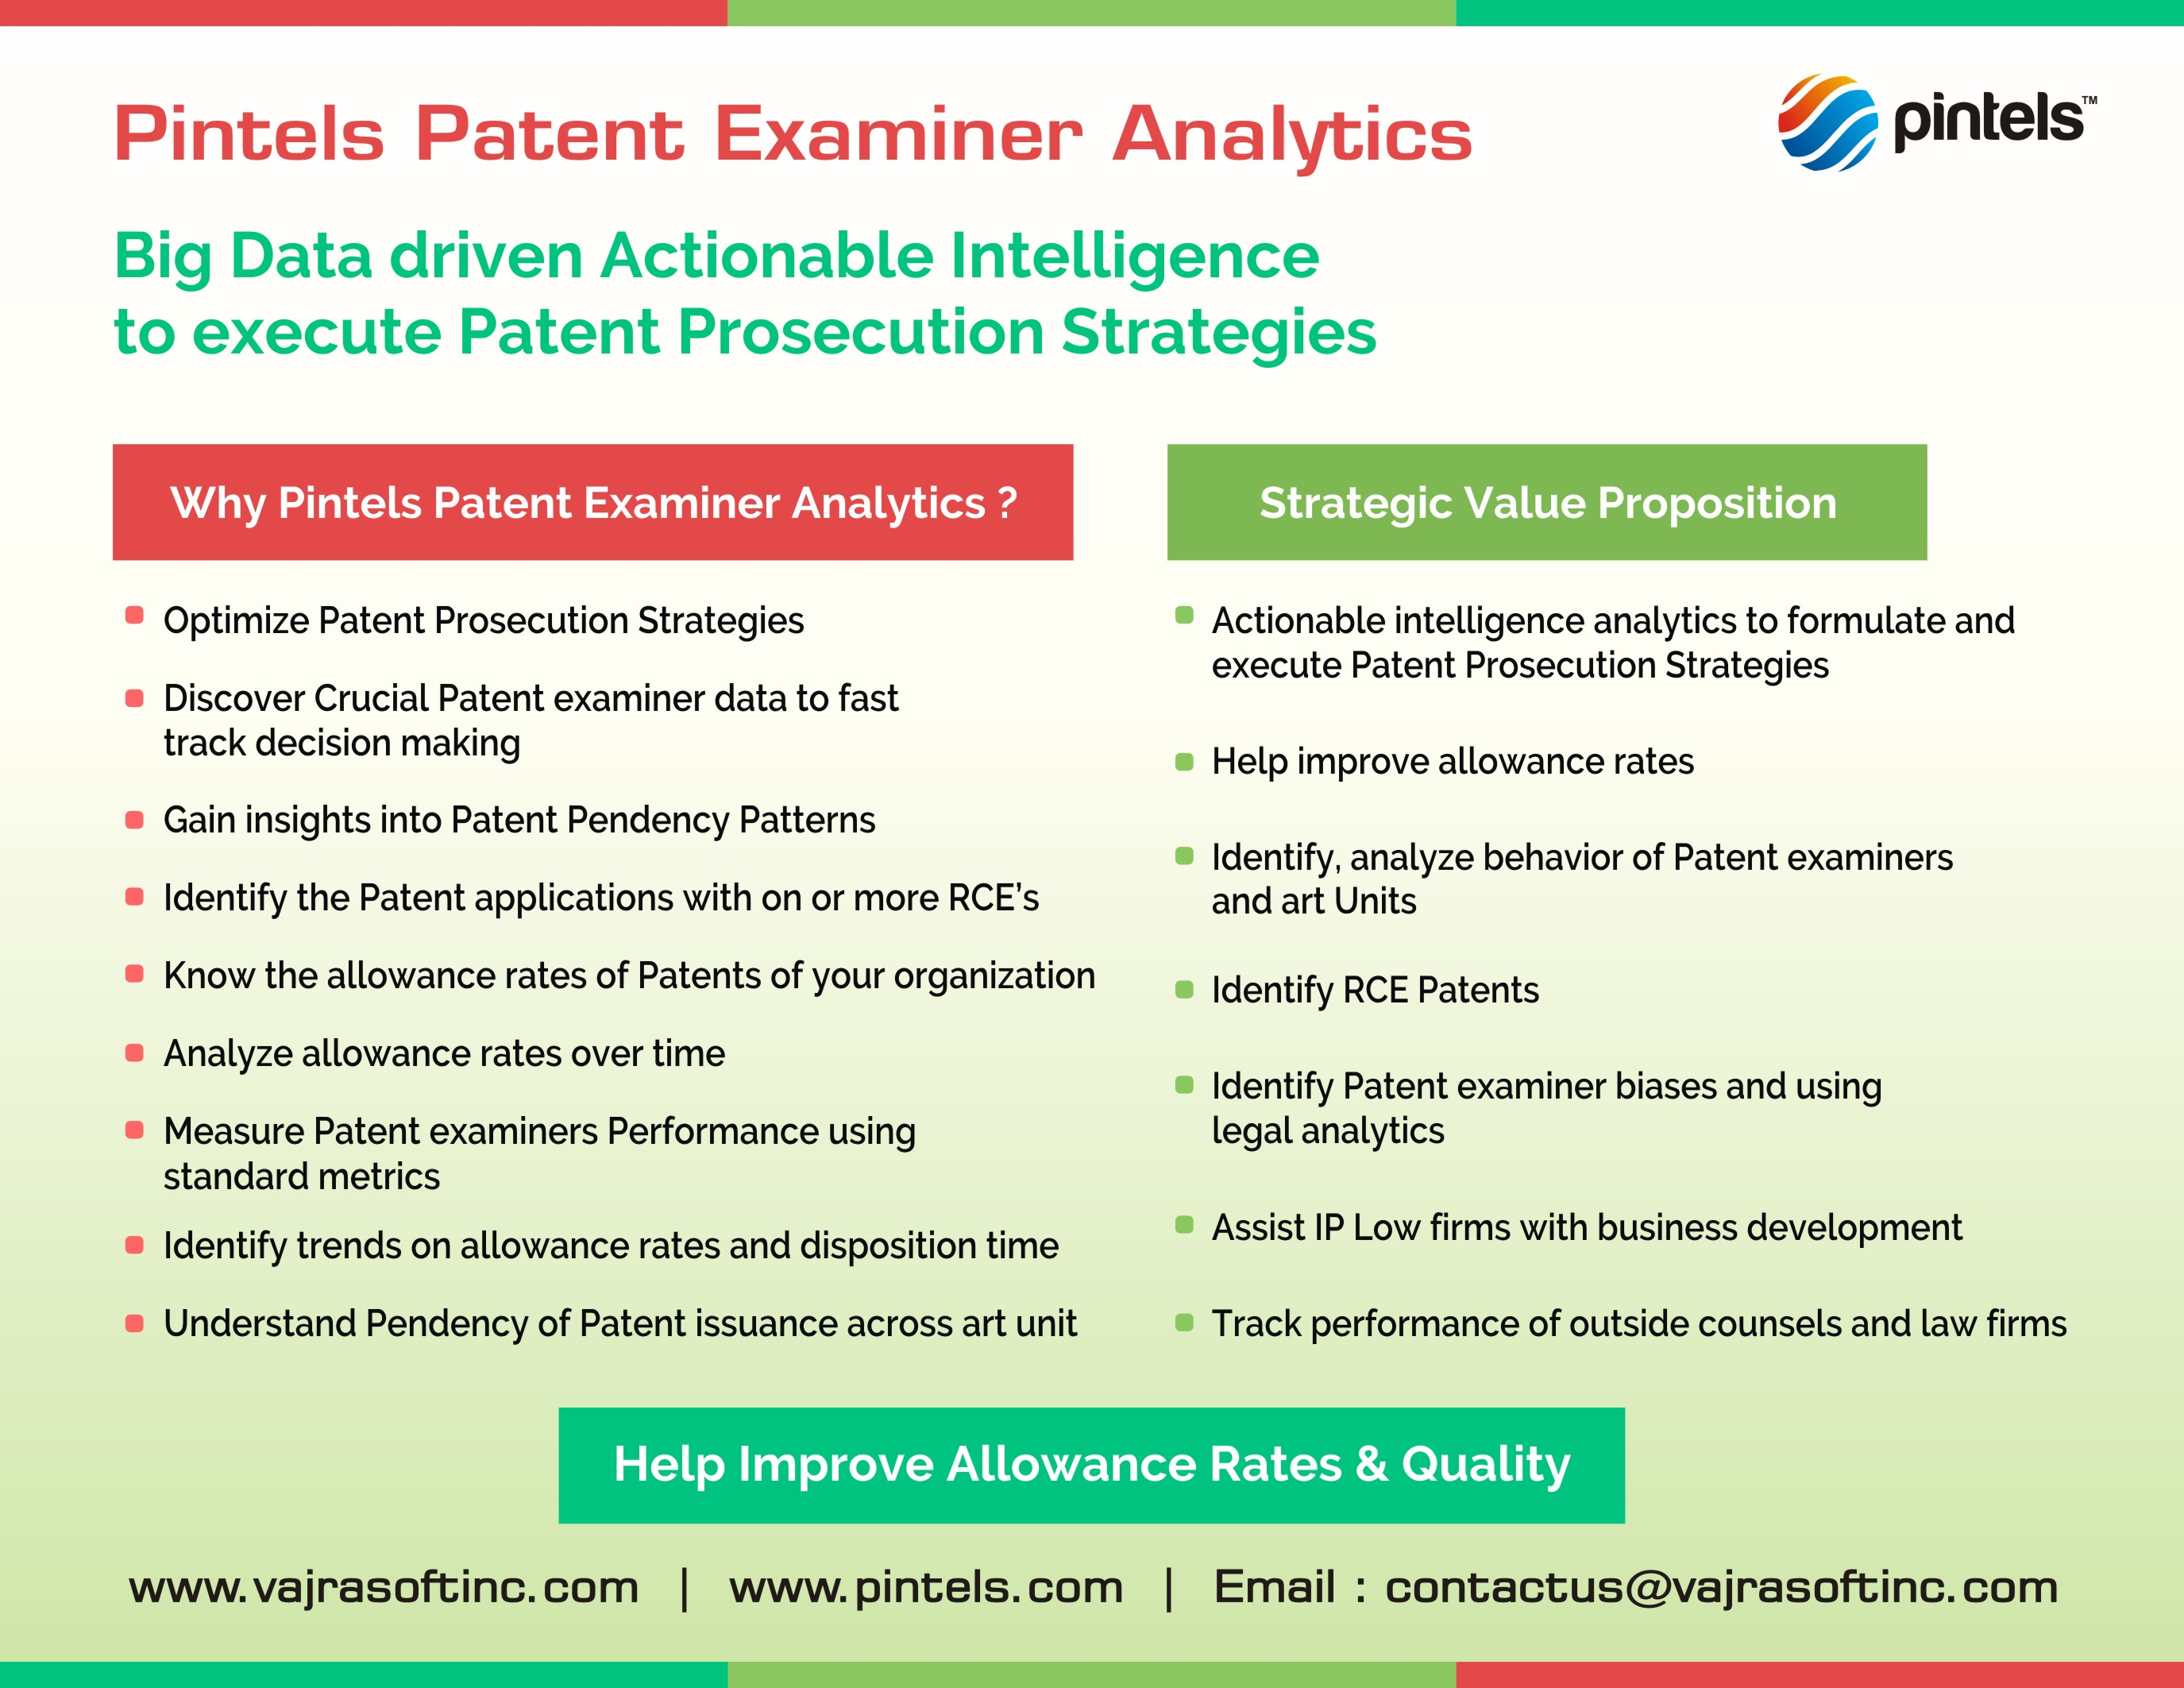 Pintels Patent Examiner Analytics